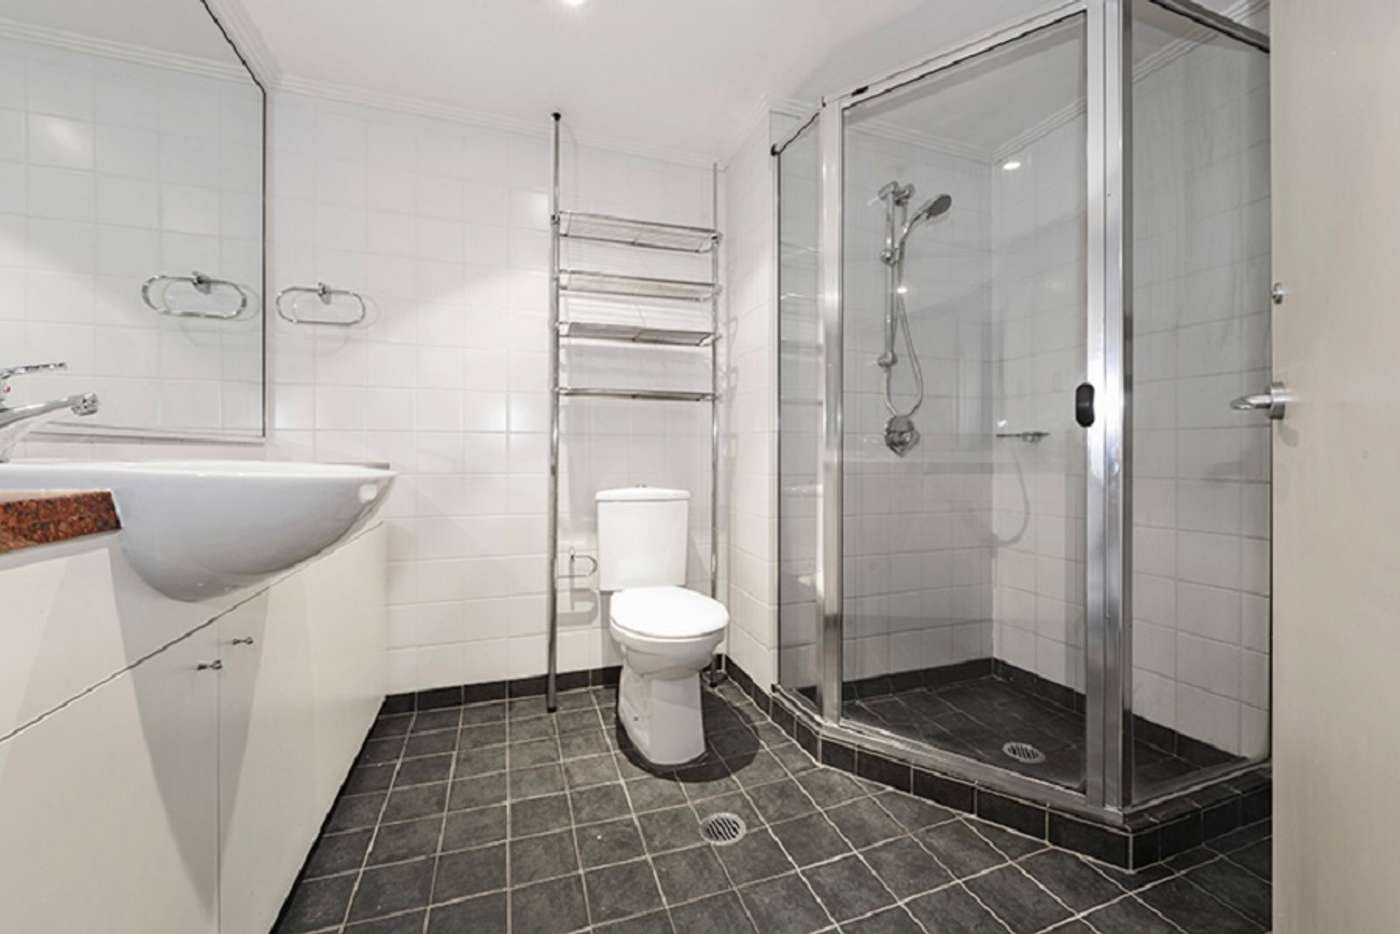 Fifth view of Homely apartment listing, 1420/1 Sergeants Lane, St Leonards NSW 2065